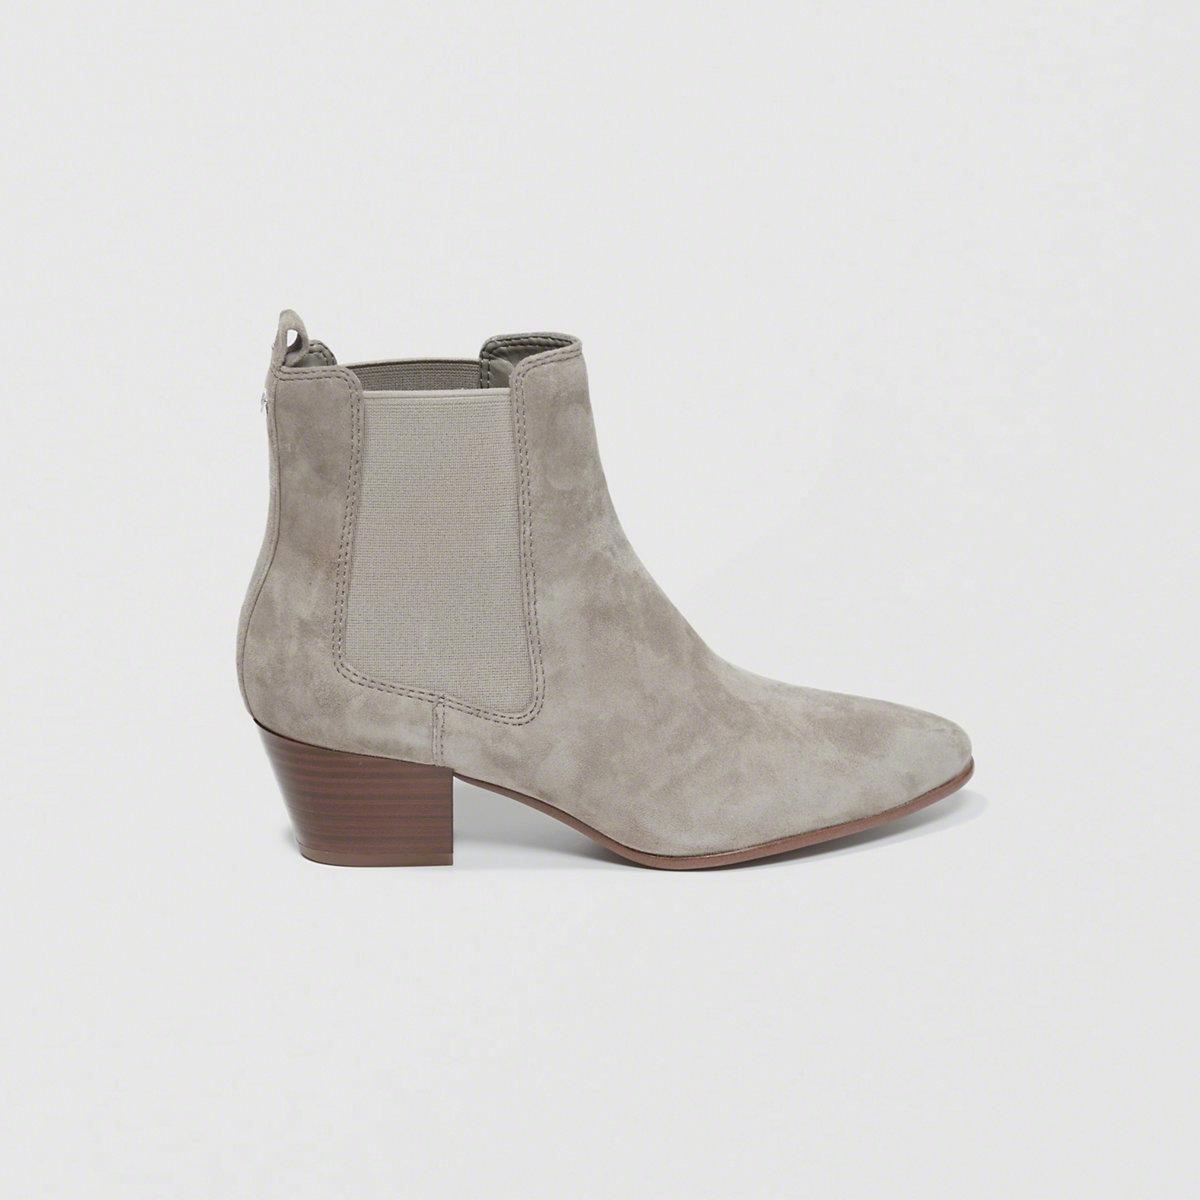 3ad90c95e Lyst - Sam Edelman Reesa Booties in Gray